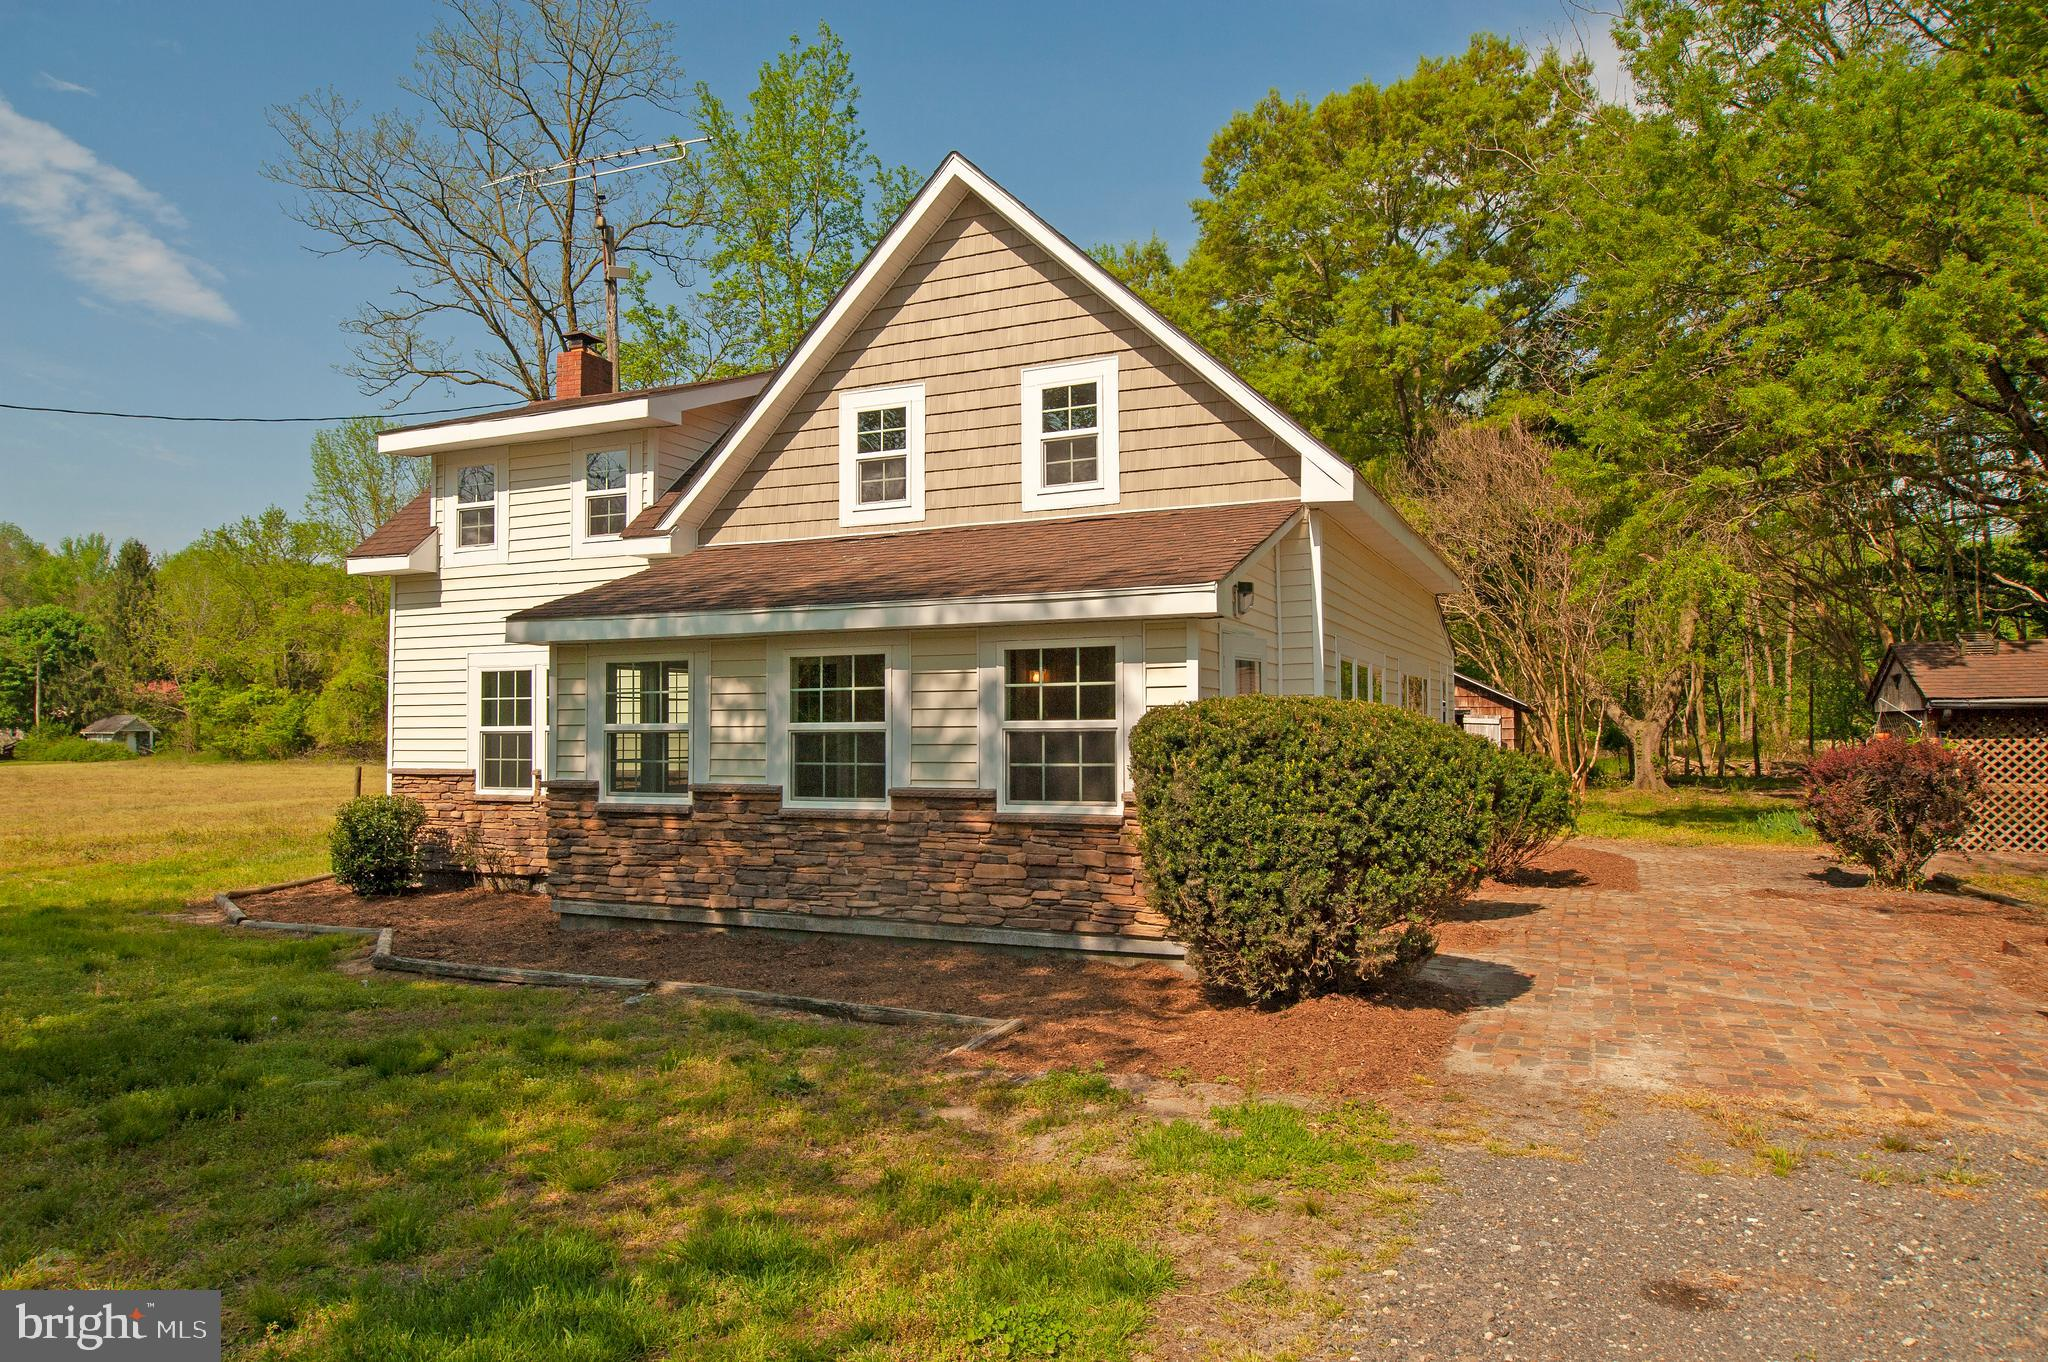 Newly renovated!! This 3 bed, 1.5 bath home is set on just over an acre of land & has been beautiful